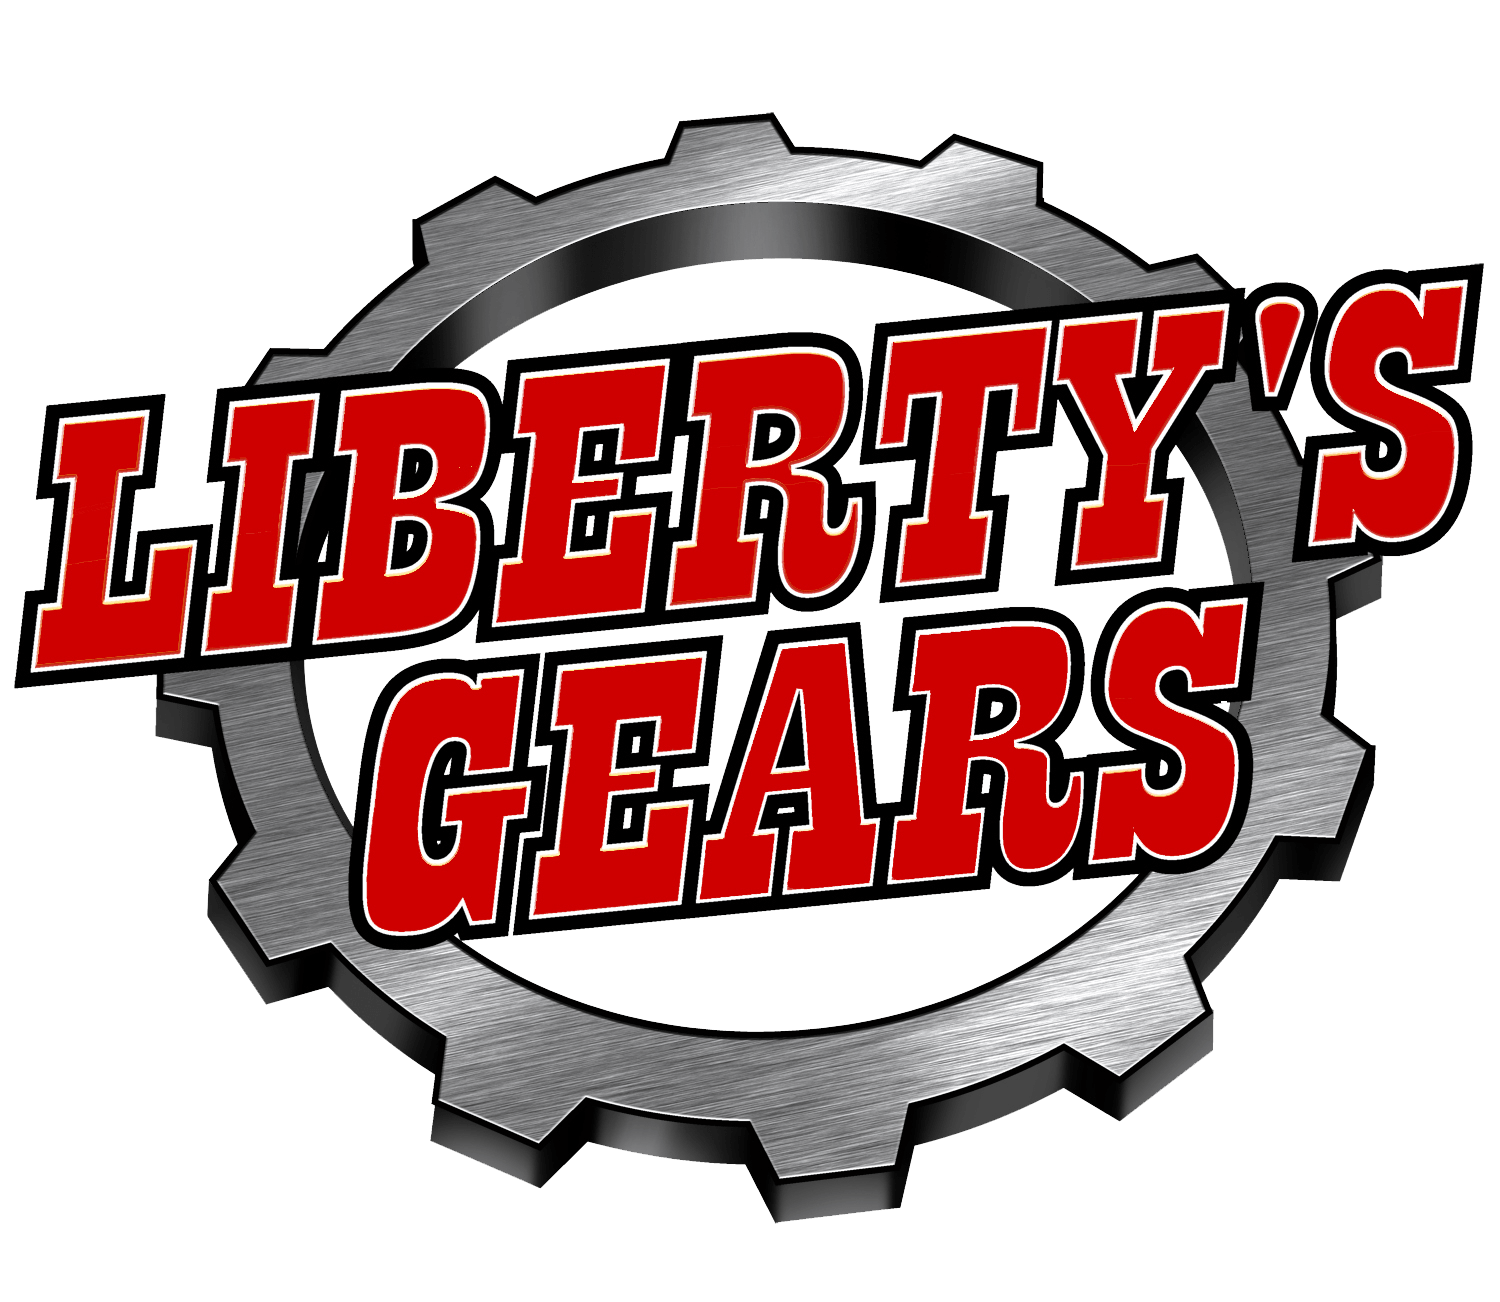 Evo 2017 Logo >> Liberty's Gears | An Elite Tremec Transmission Distributor, making us the best source for all of ...